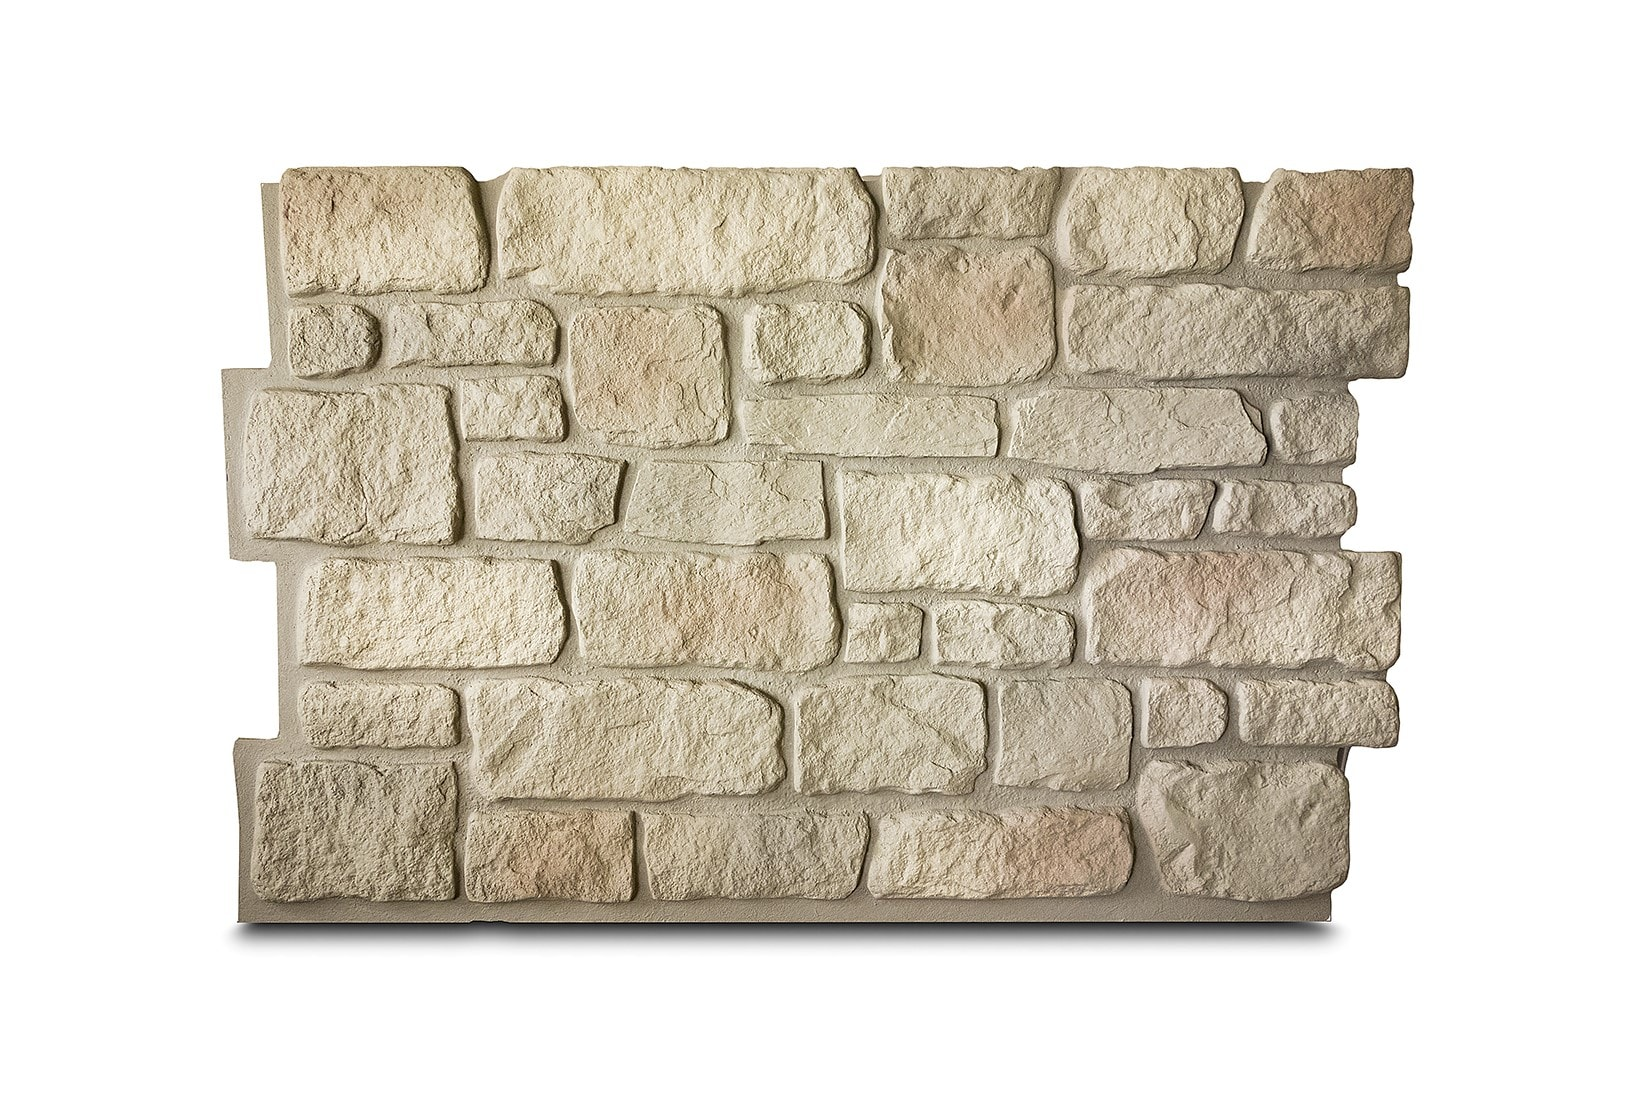 New Brick And Stone Faux Masonry Panels From Nu Wood